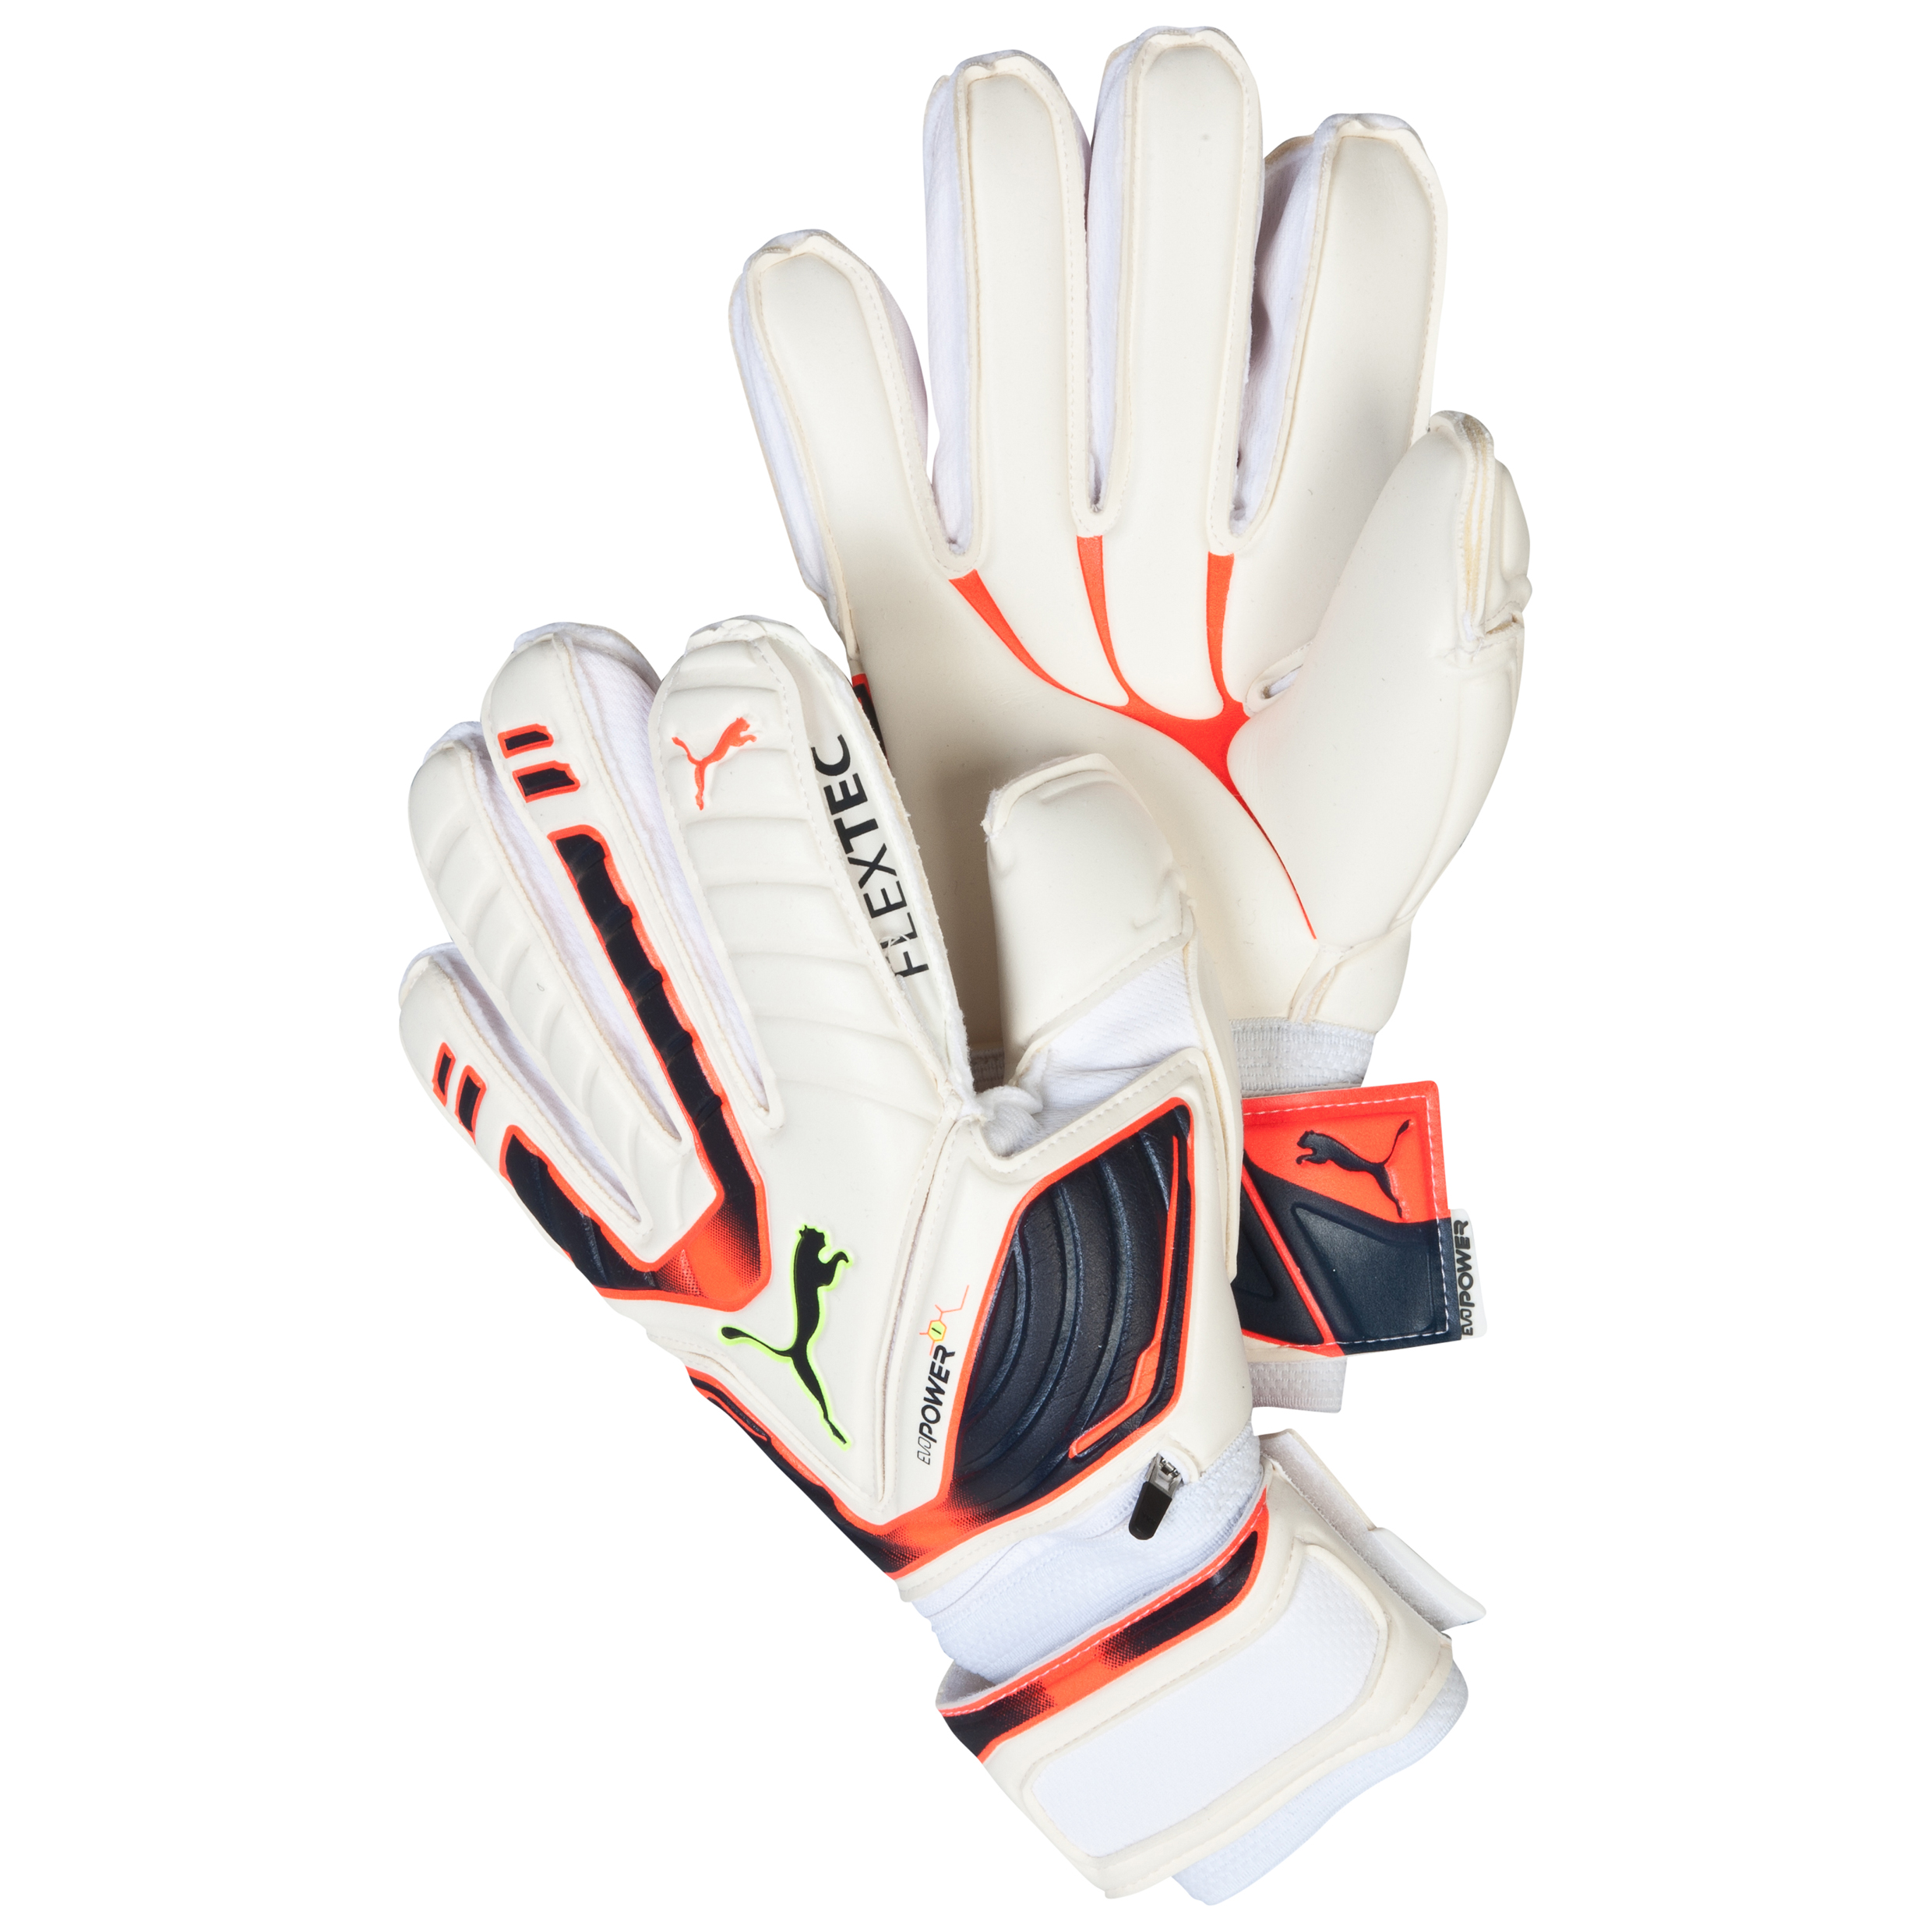 Puma evoPOWER Protect 1 Goalkeeper Gloves White